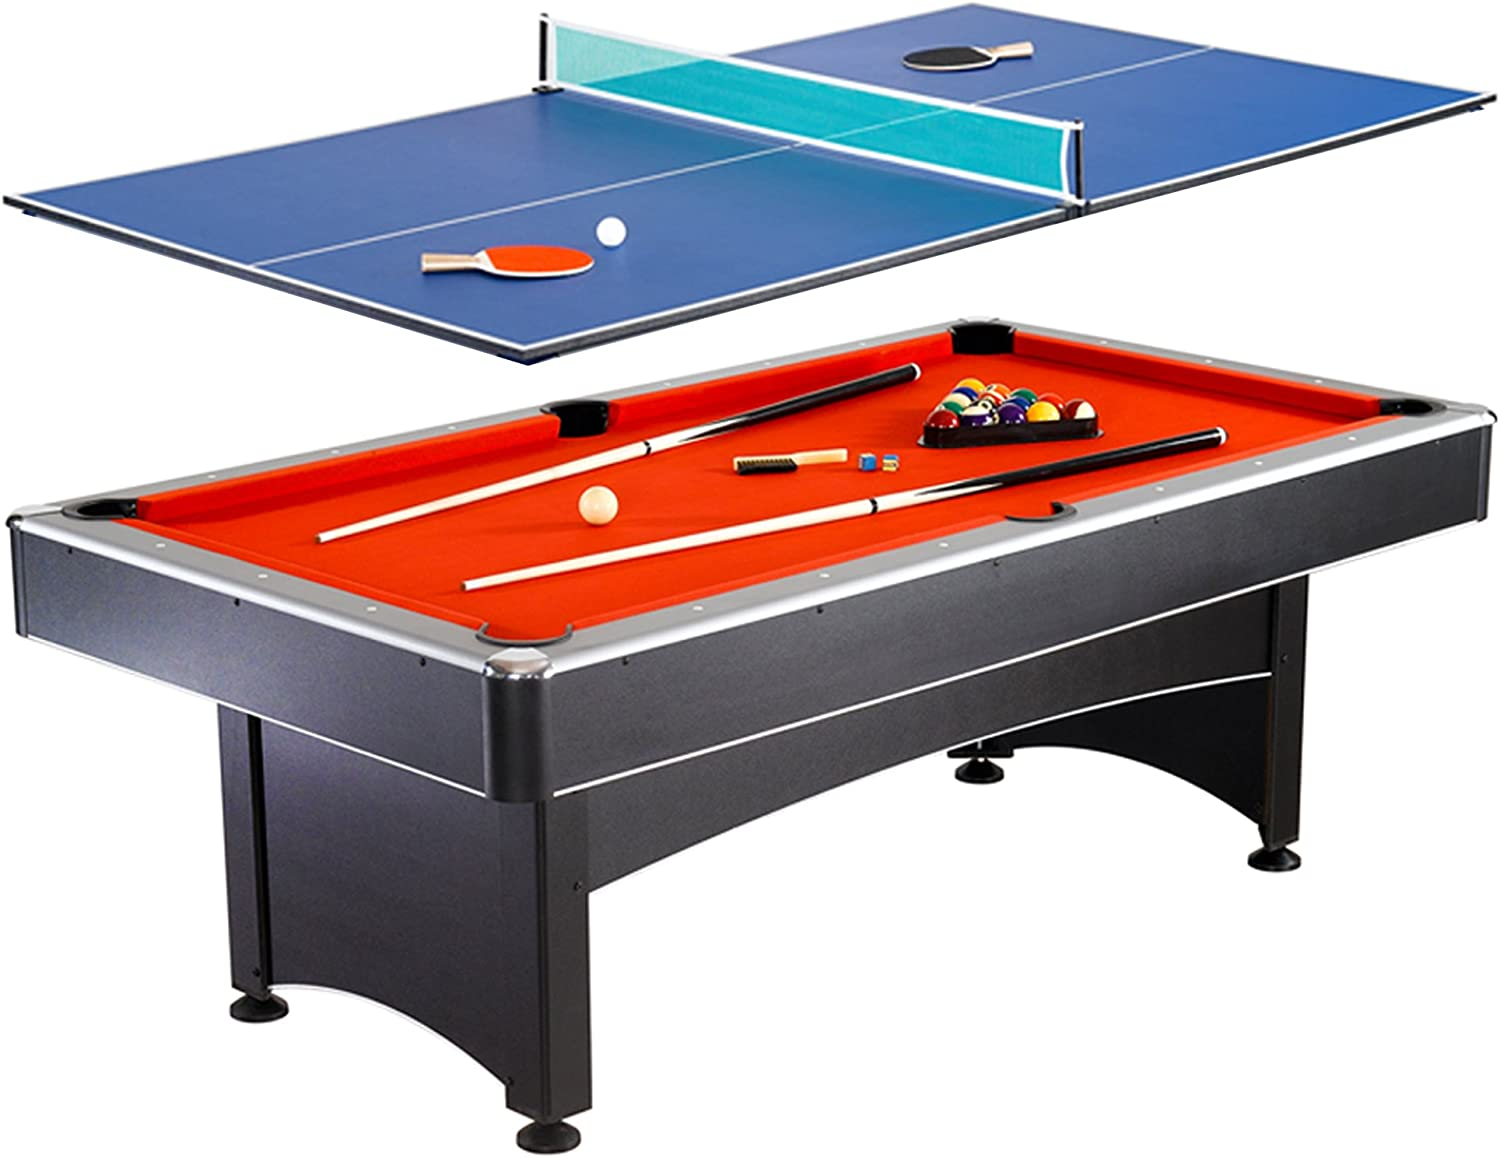 Amazon Com Hathaway Maverick 7 Foot Pool And Table Tennis Multi Game With Red Felt And Blue Table Tennis Surface Includes Cues Paddles And Balls Tabletop Table Tennis Games Sports Outdoors